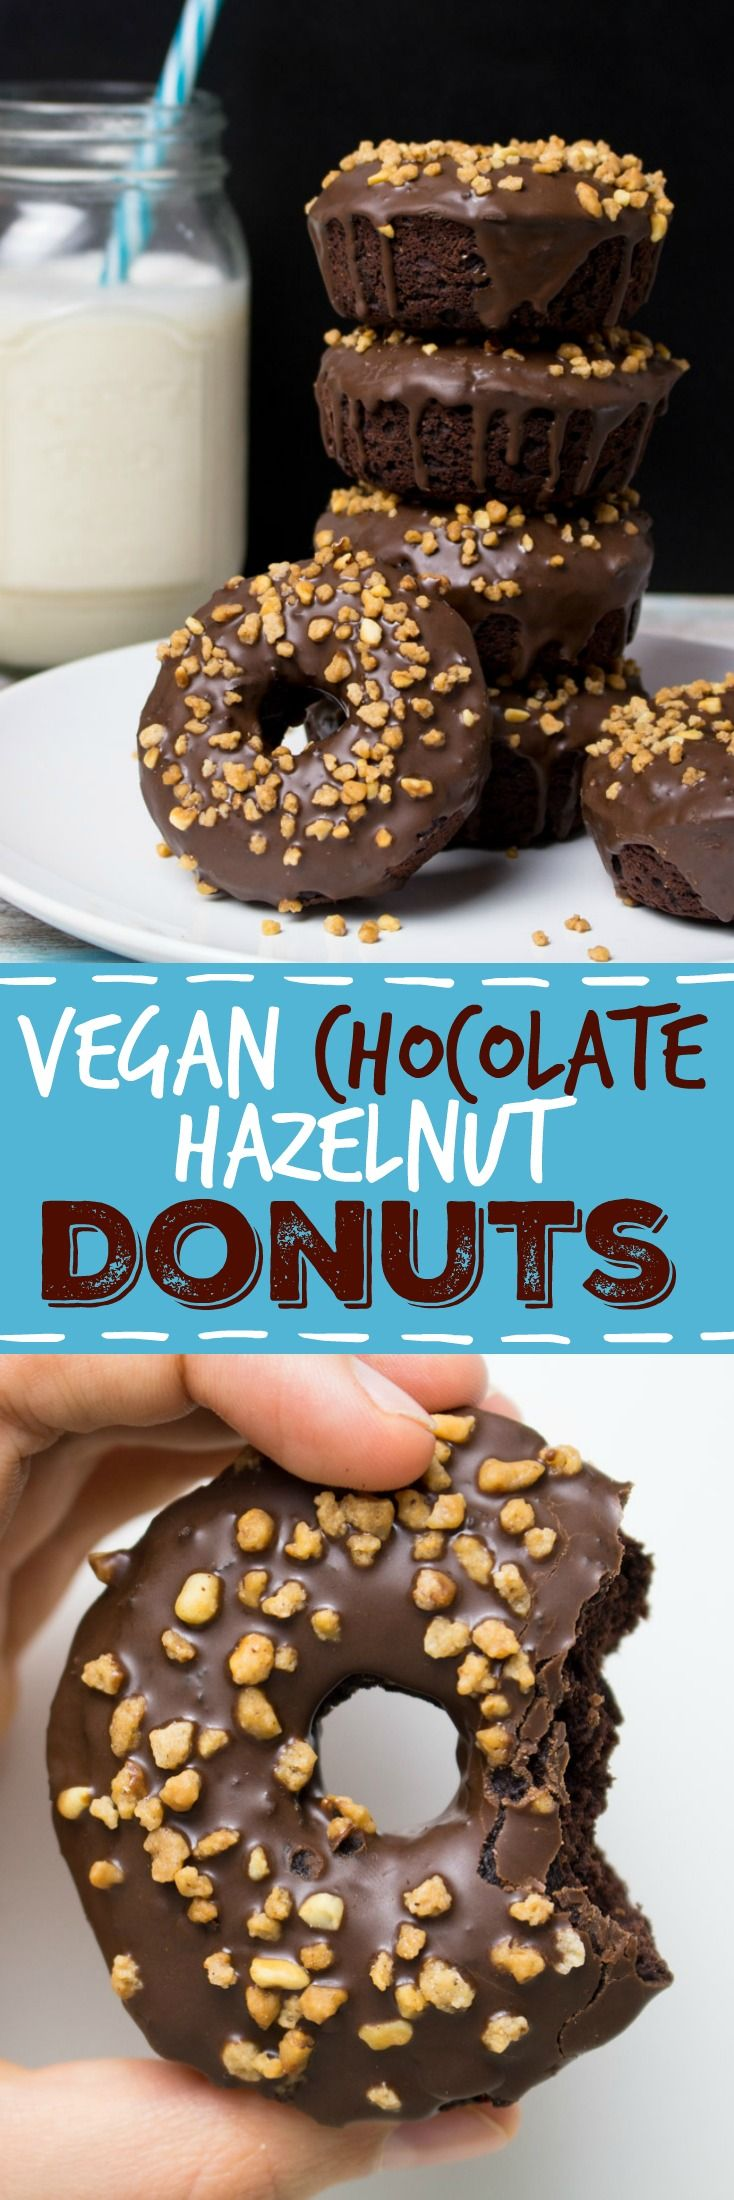 These vegan chocolate hazelnut donuts are not only super delicious and easy to make, but also healthier because they are baked, not fried! It might sound strange, but I used kidney beans for the batter, which made them so moist and chocolatey.